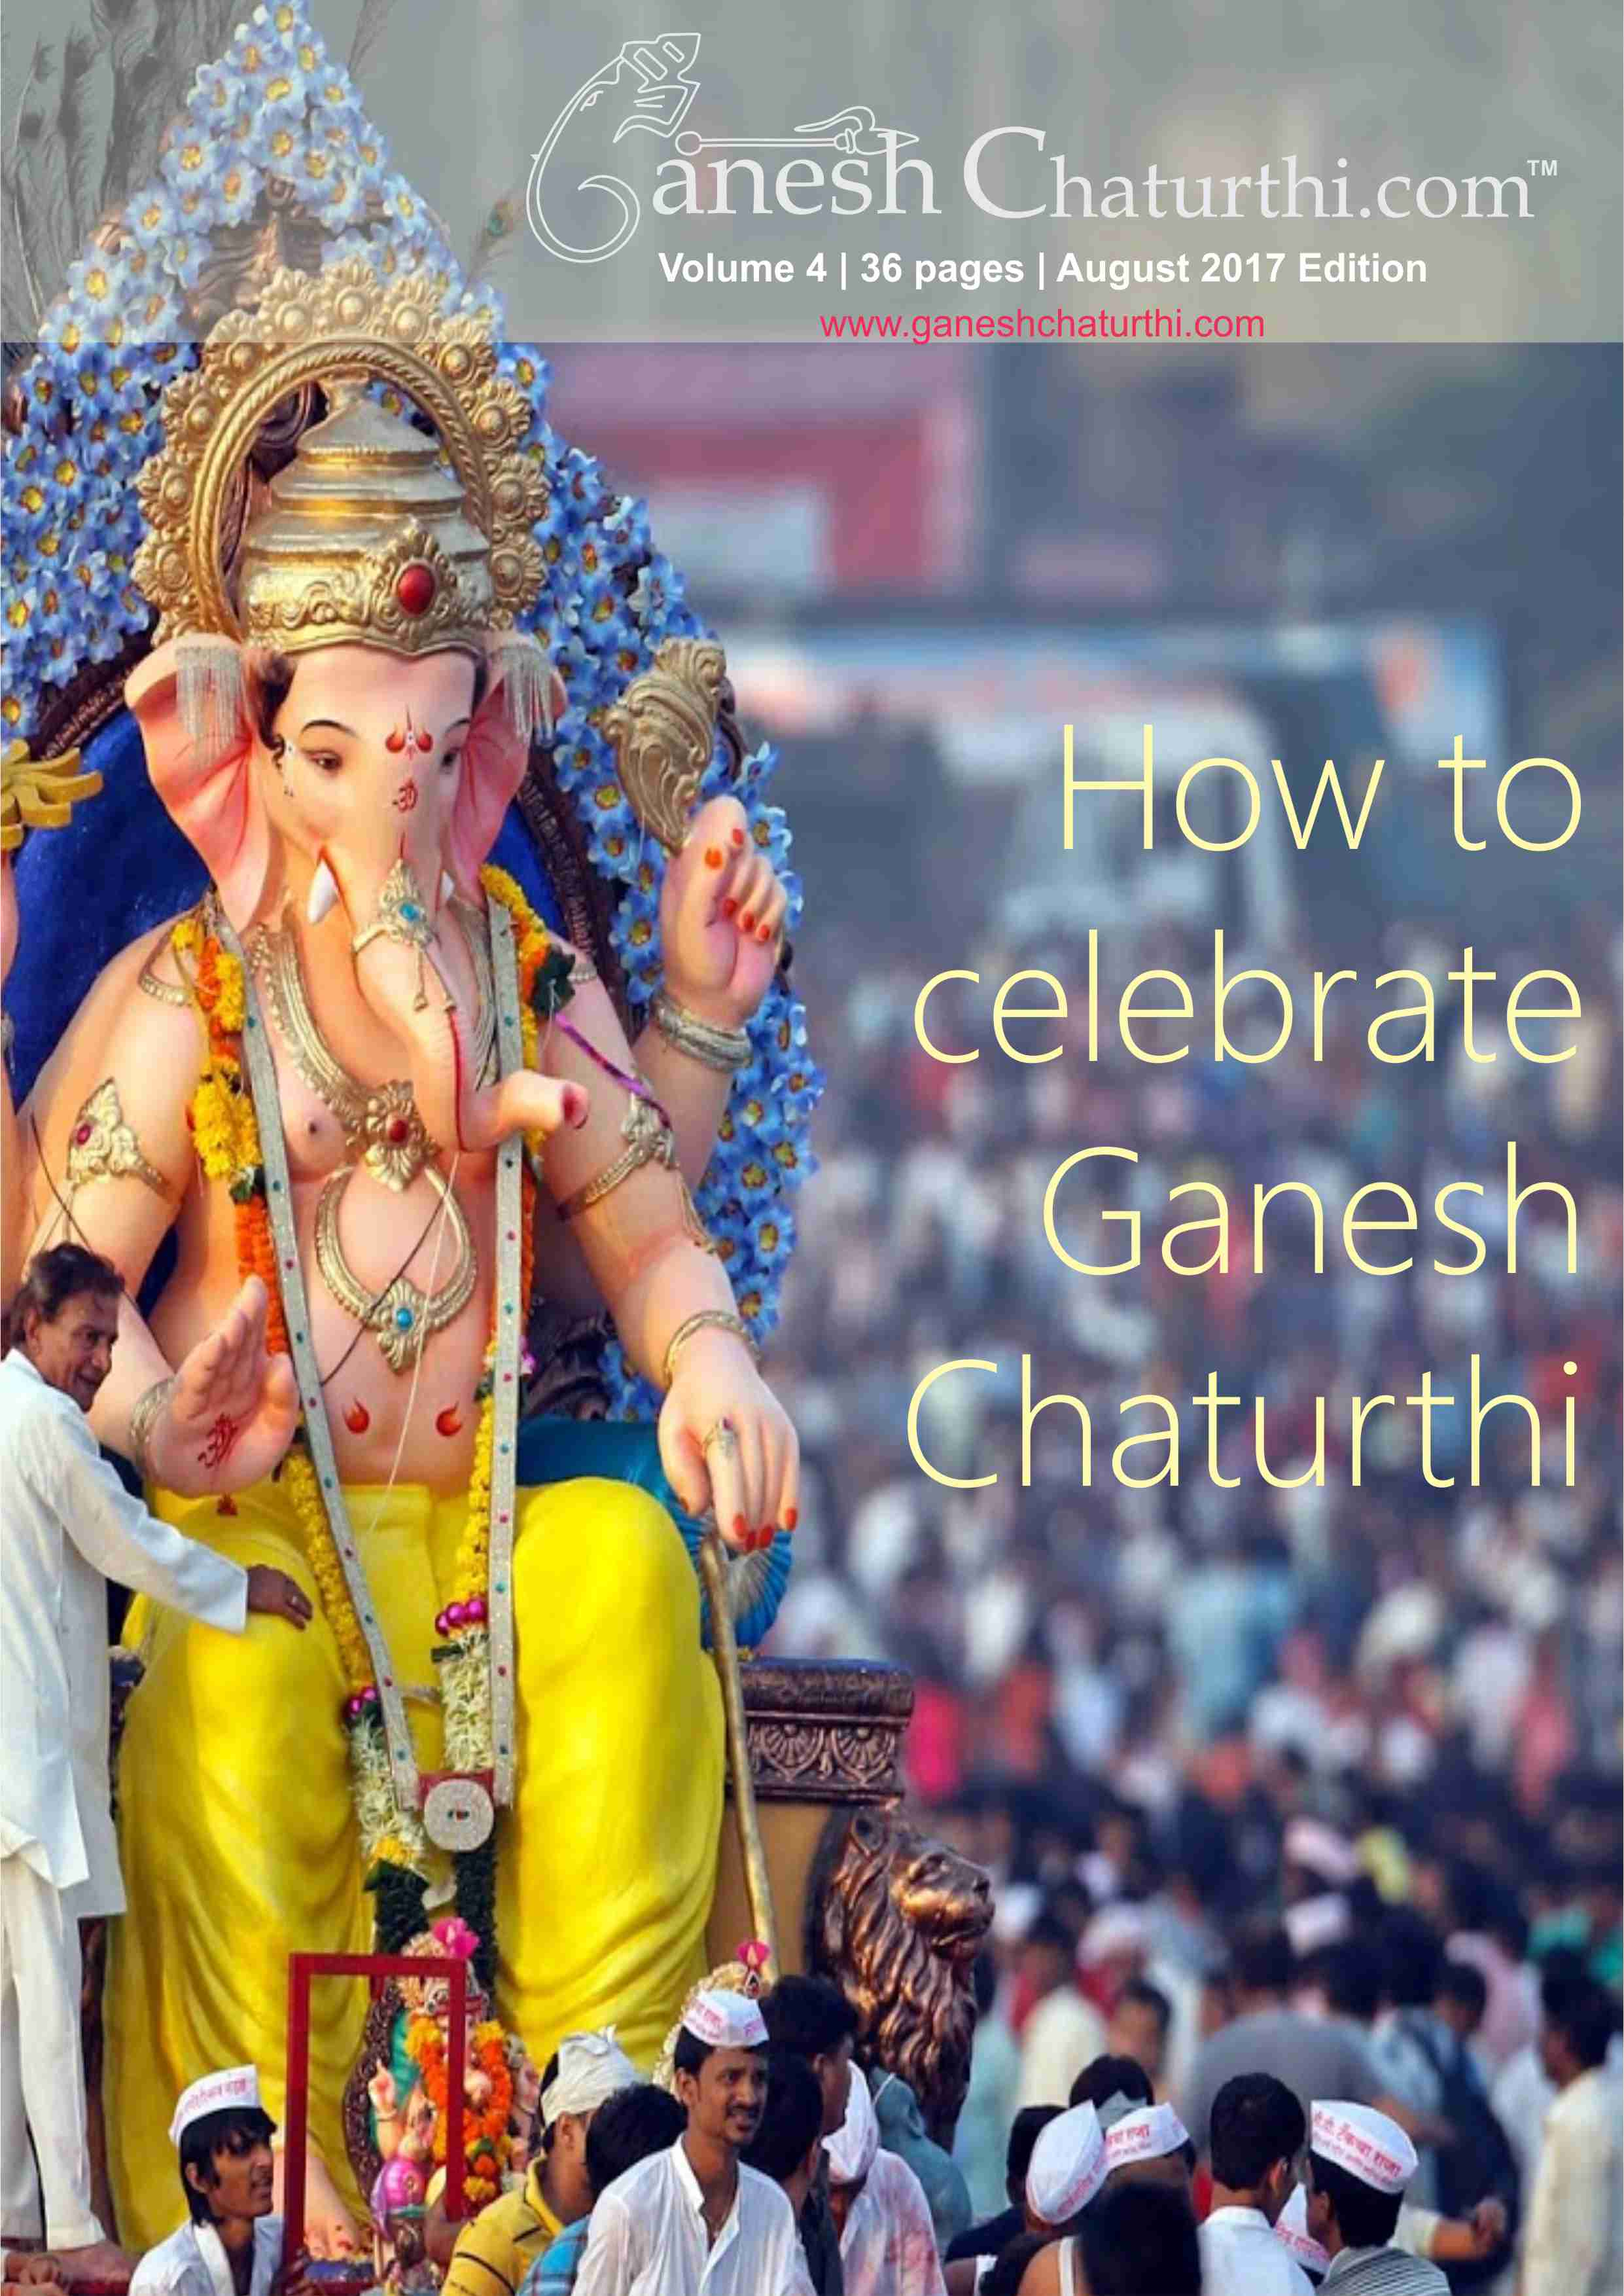 Ganesh chaturthi emagazine 2016 thecheapjerseys Image collections